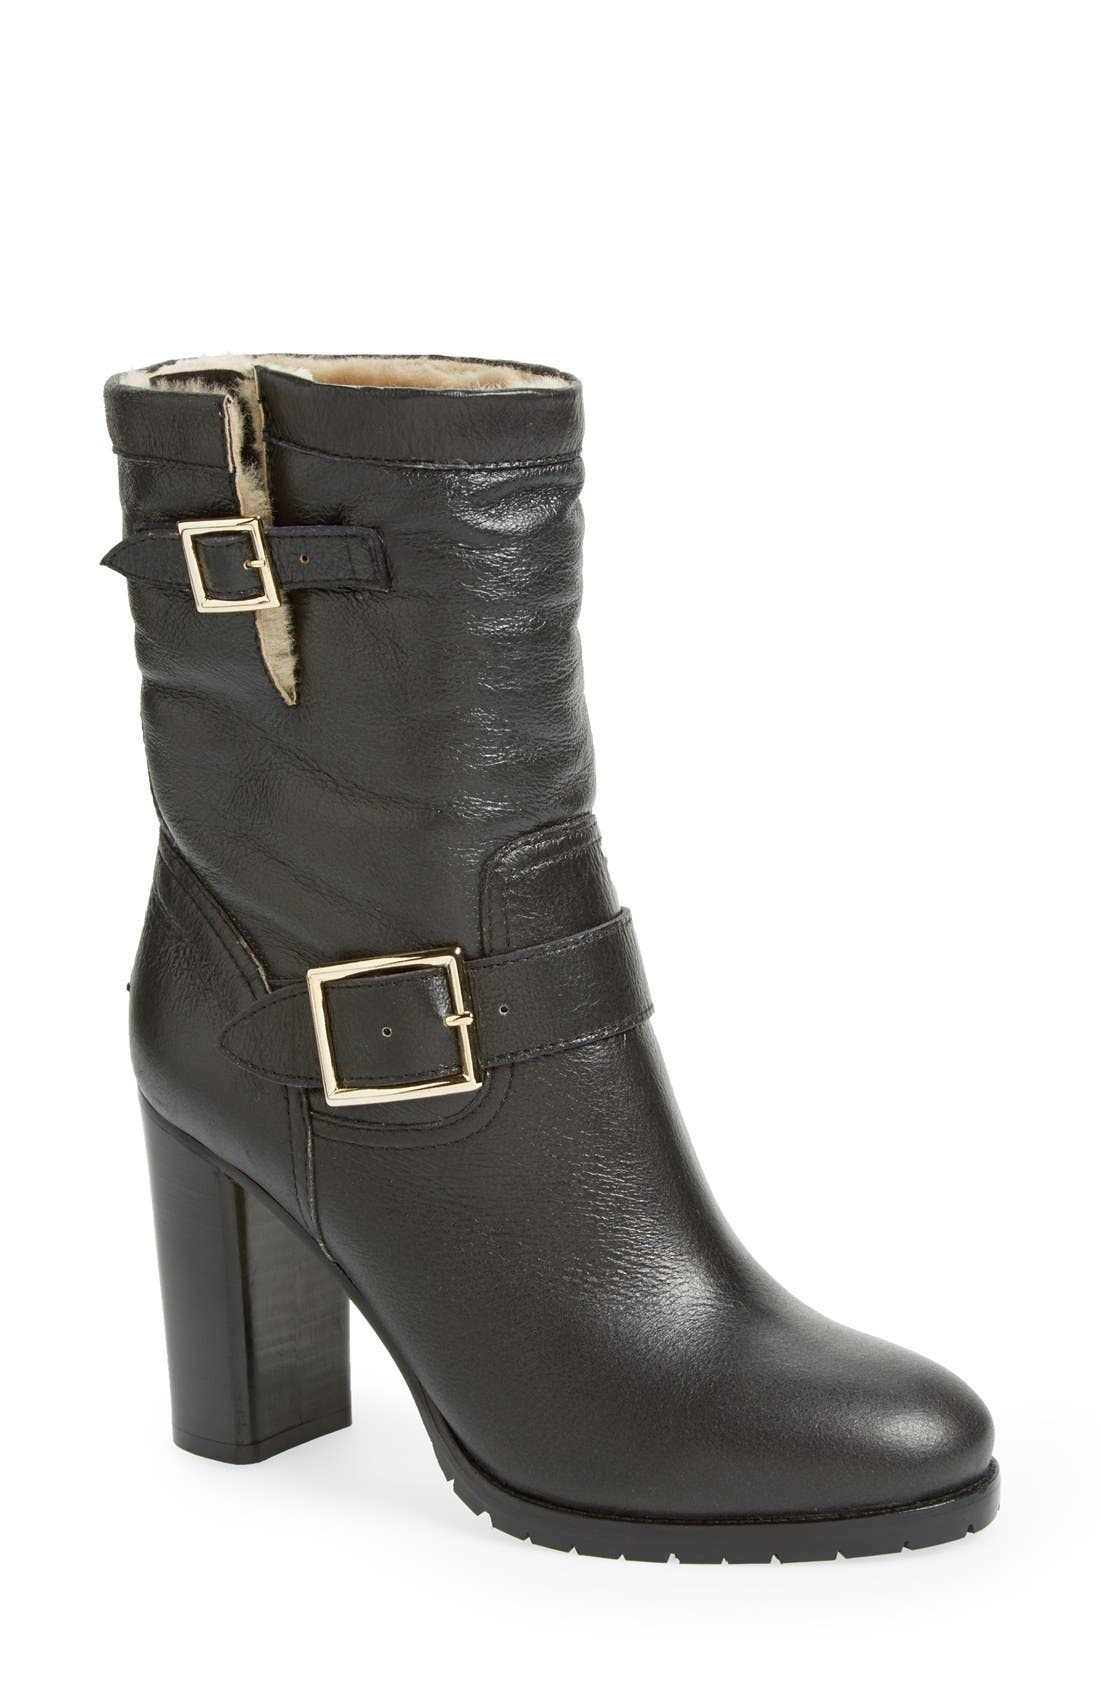 Alternate Image 1 Selected - Jimmy Choo 'Dart' Leather & Genuine Shearling Mid Calf Moto Boot (Women)